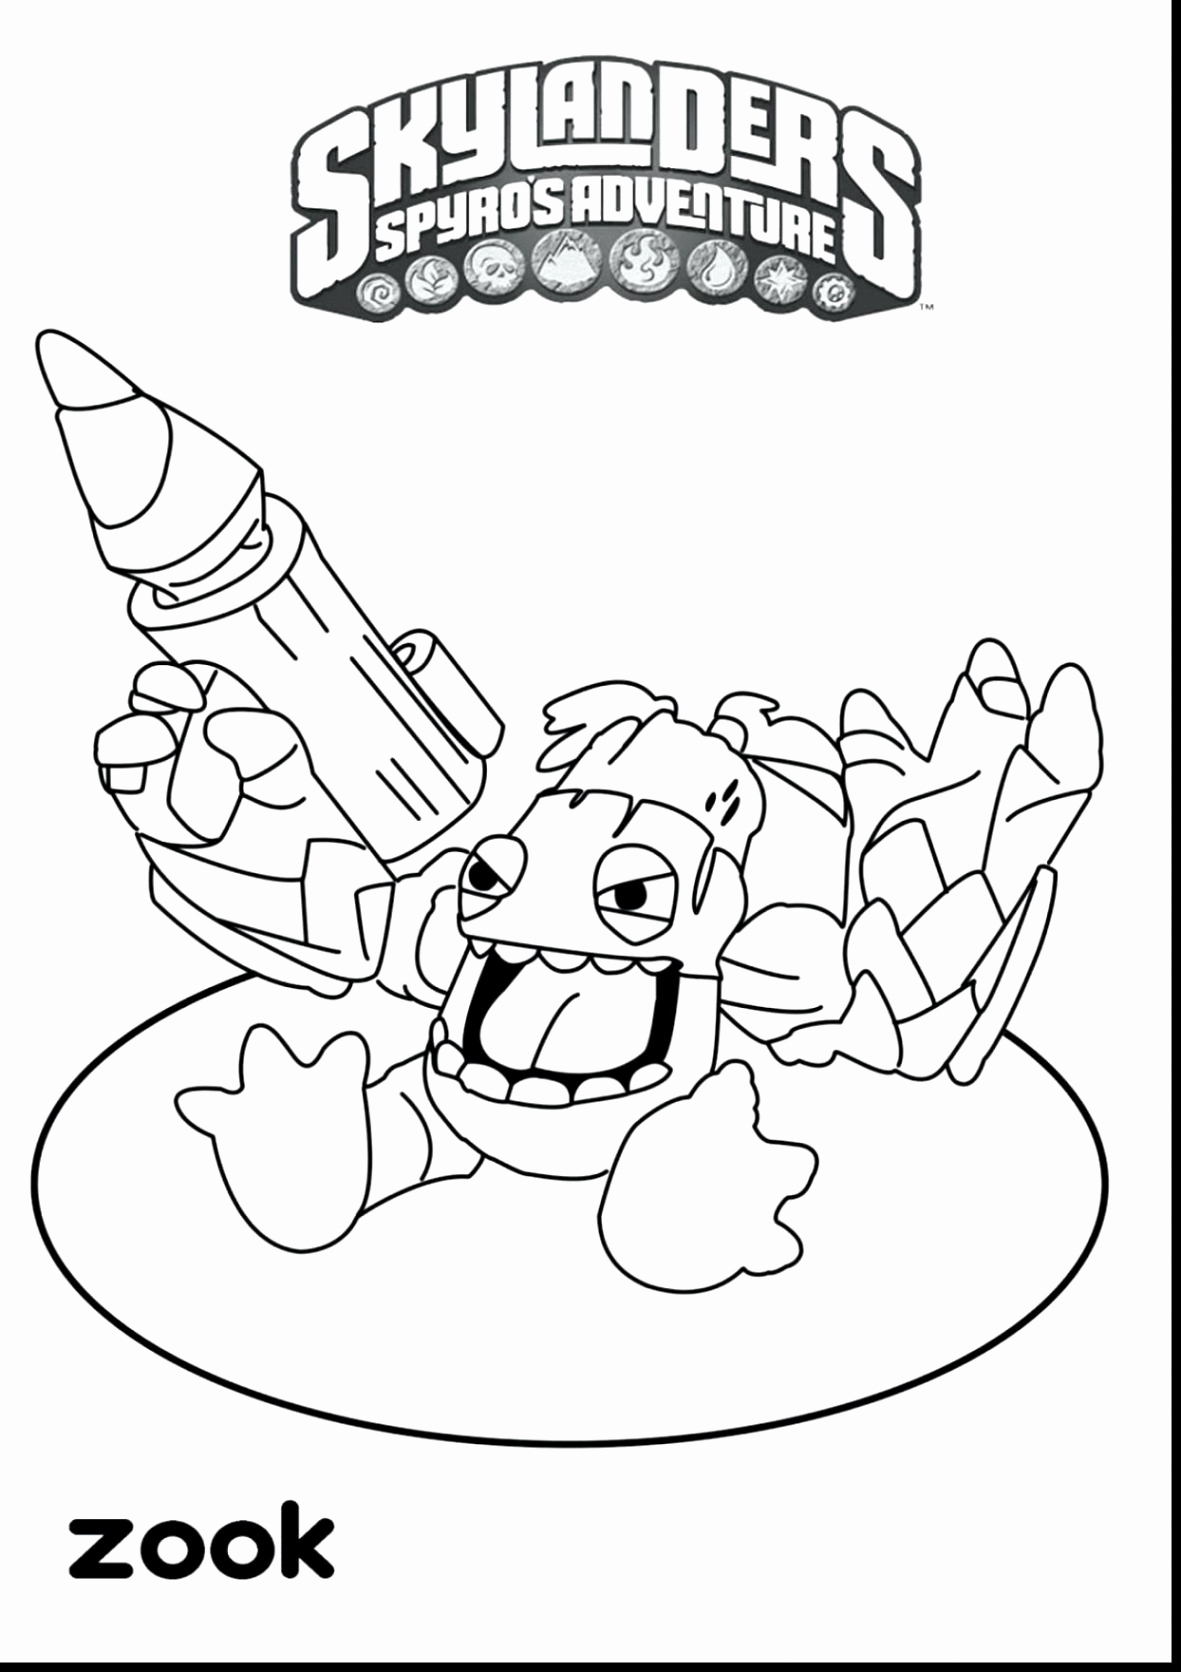 21 Paw Patrol Giant Coloring Pages Download - Coloring Sheets